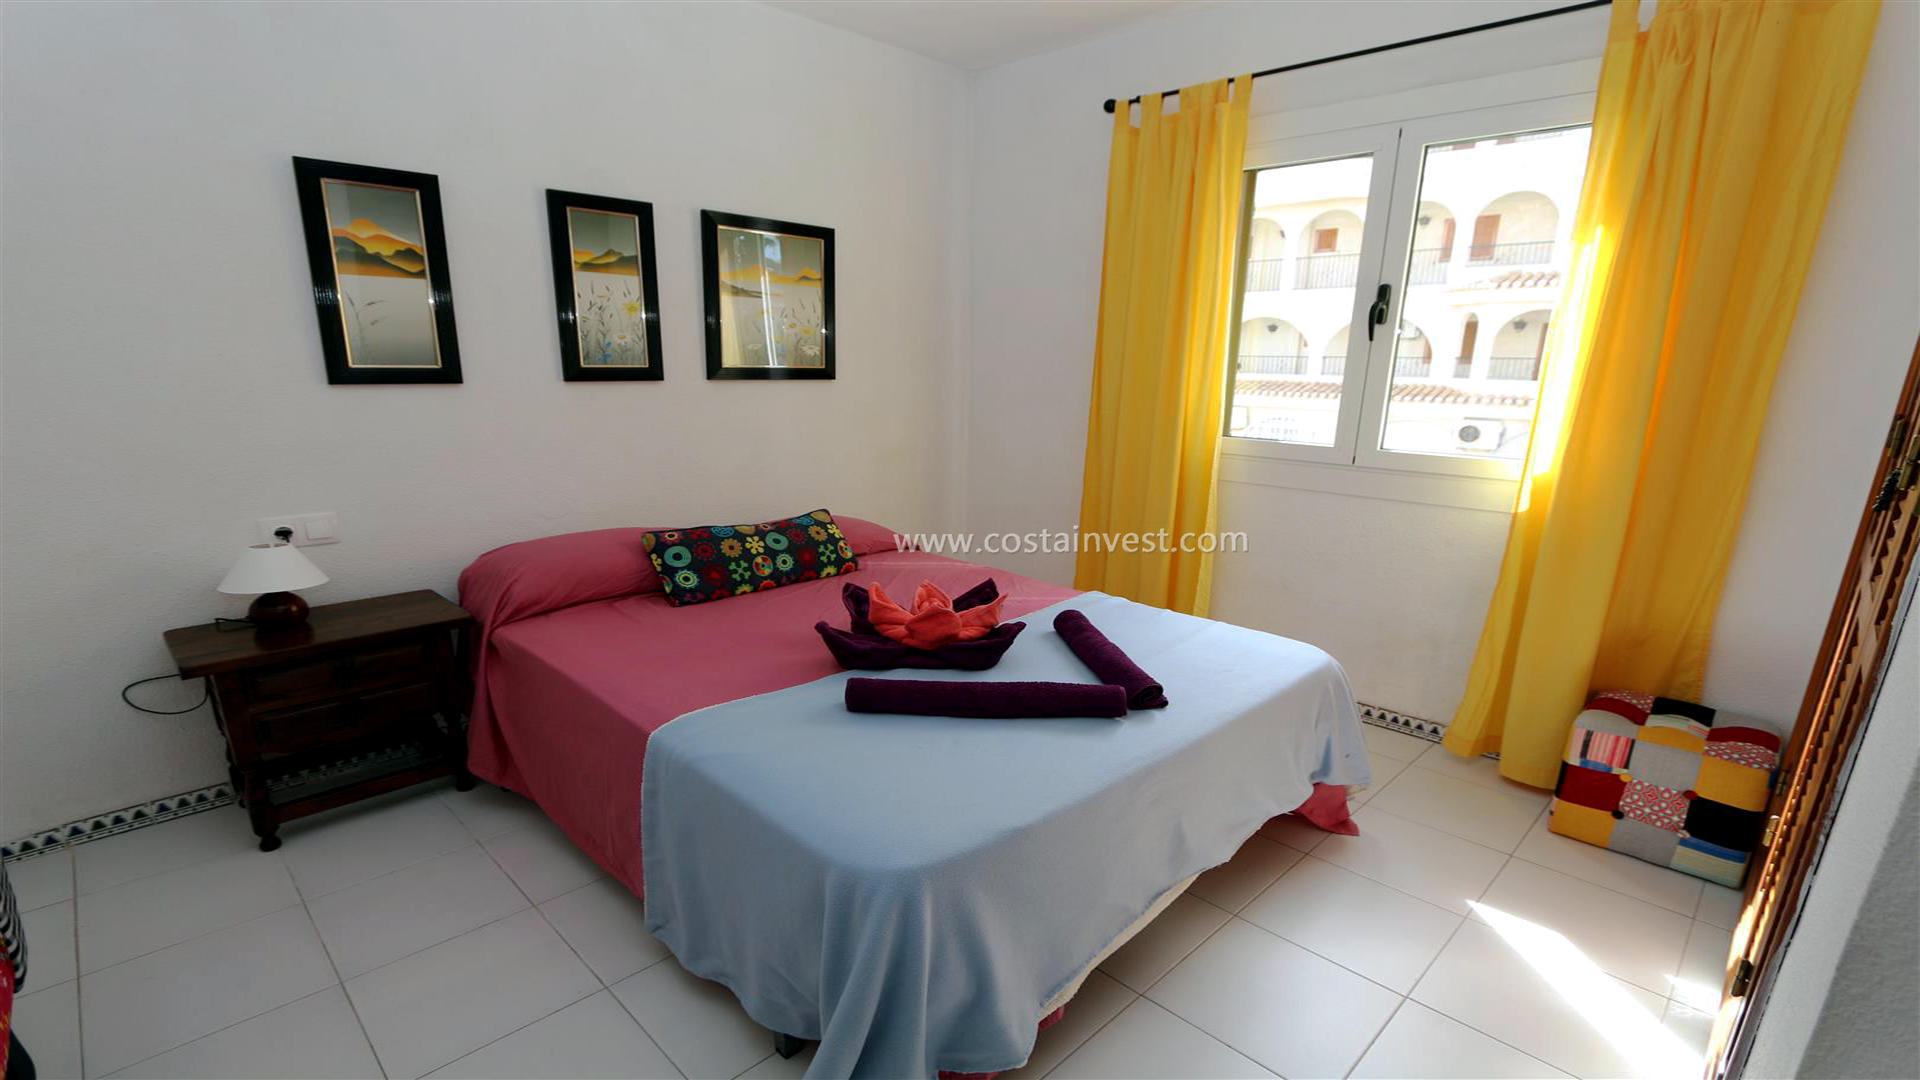 Appartement -                                       La Mata -                                       1 chambres -                                       4 occupants